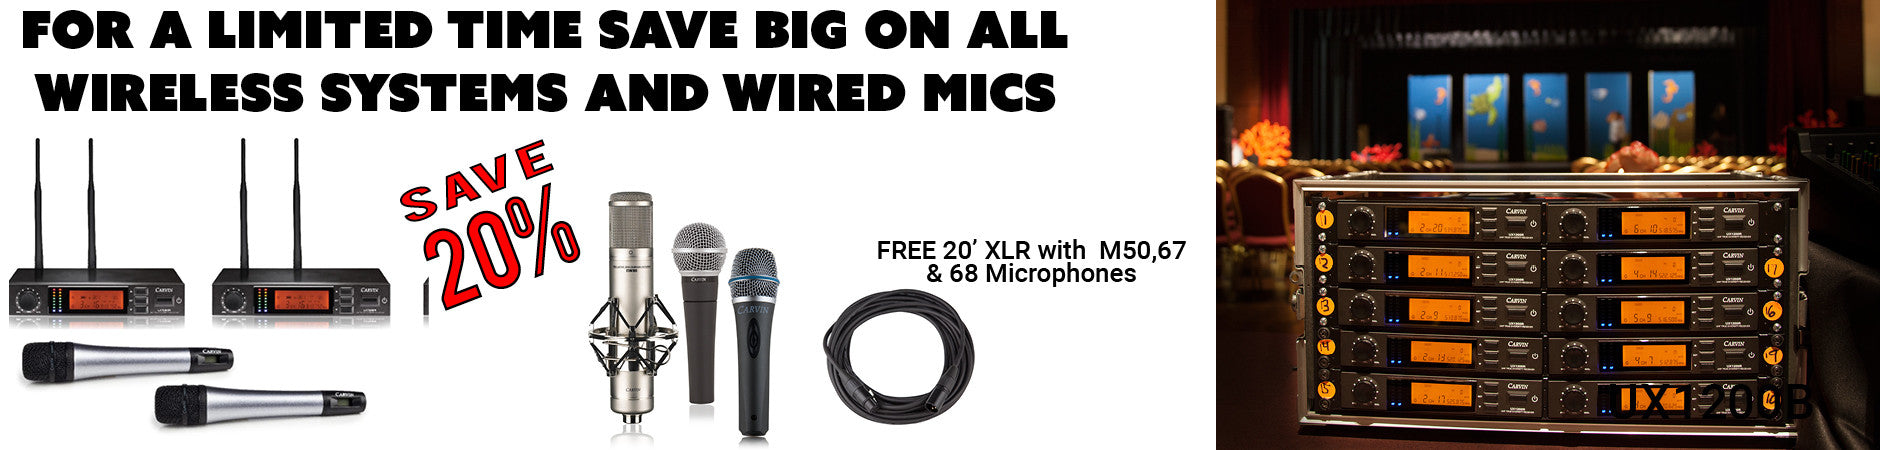 save 20 percent on wireless and wired microphones